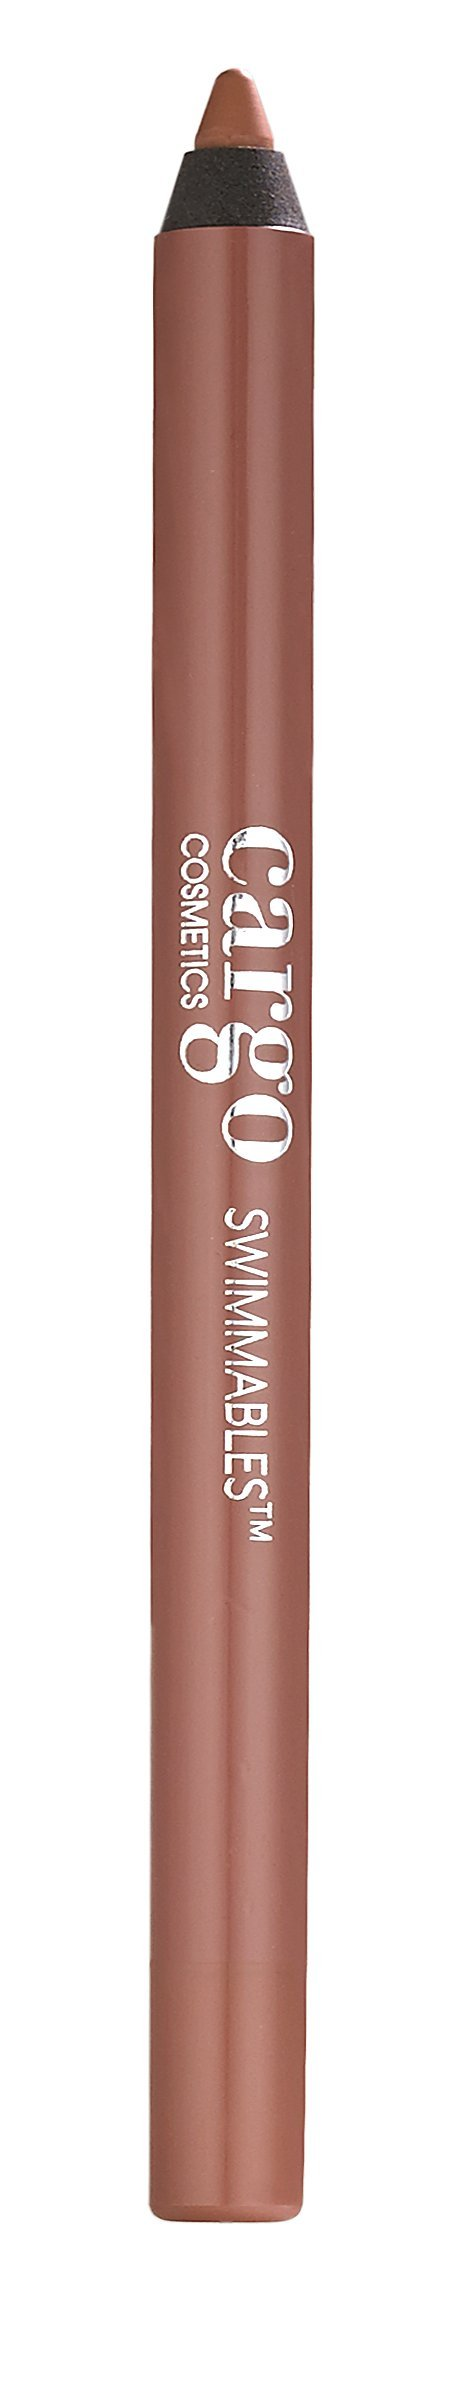 Cargo Cosmetics - Swimmables lip liner, Longwear, Water Resistant, Creamy, Smudge-proof, Canaria